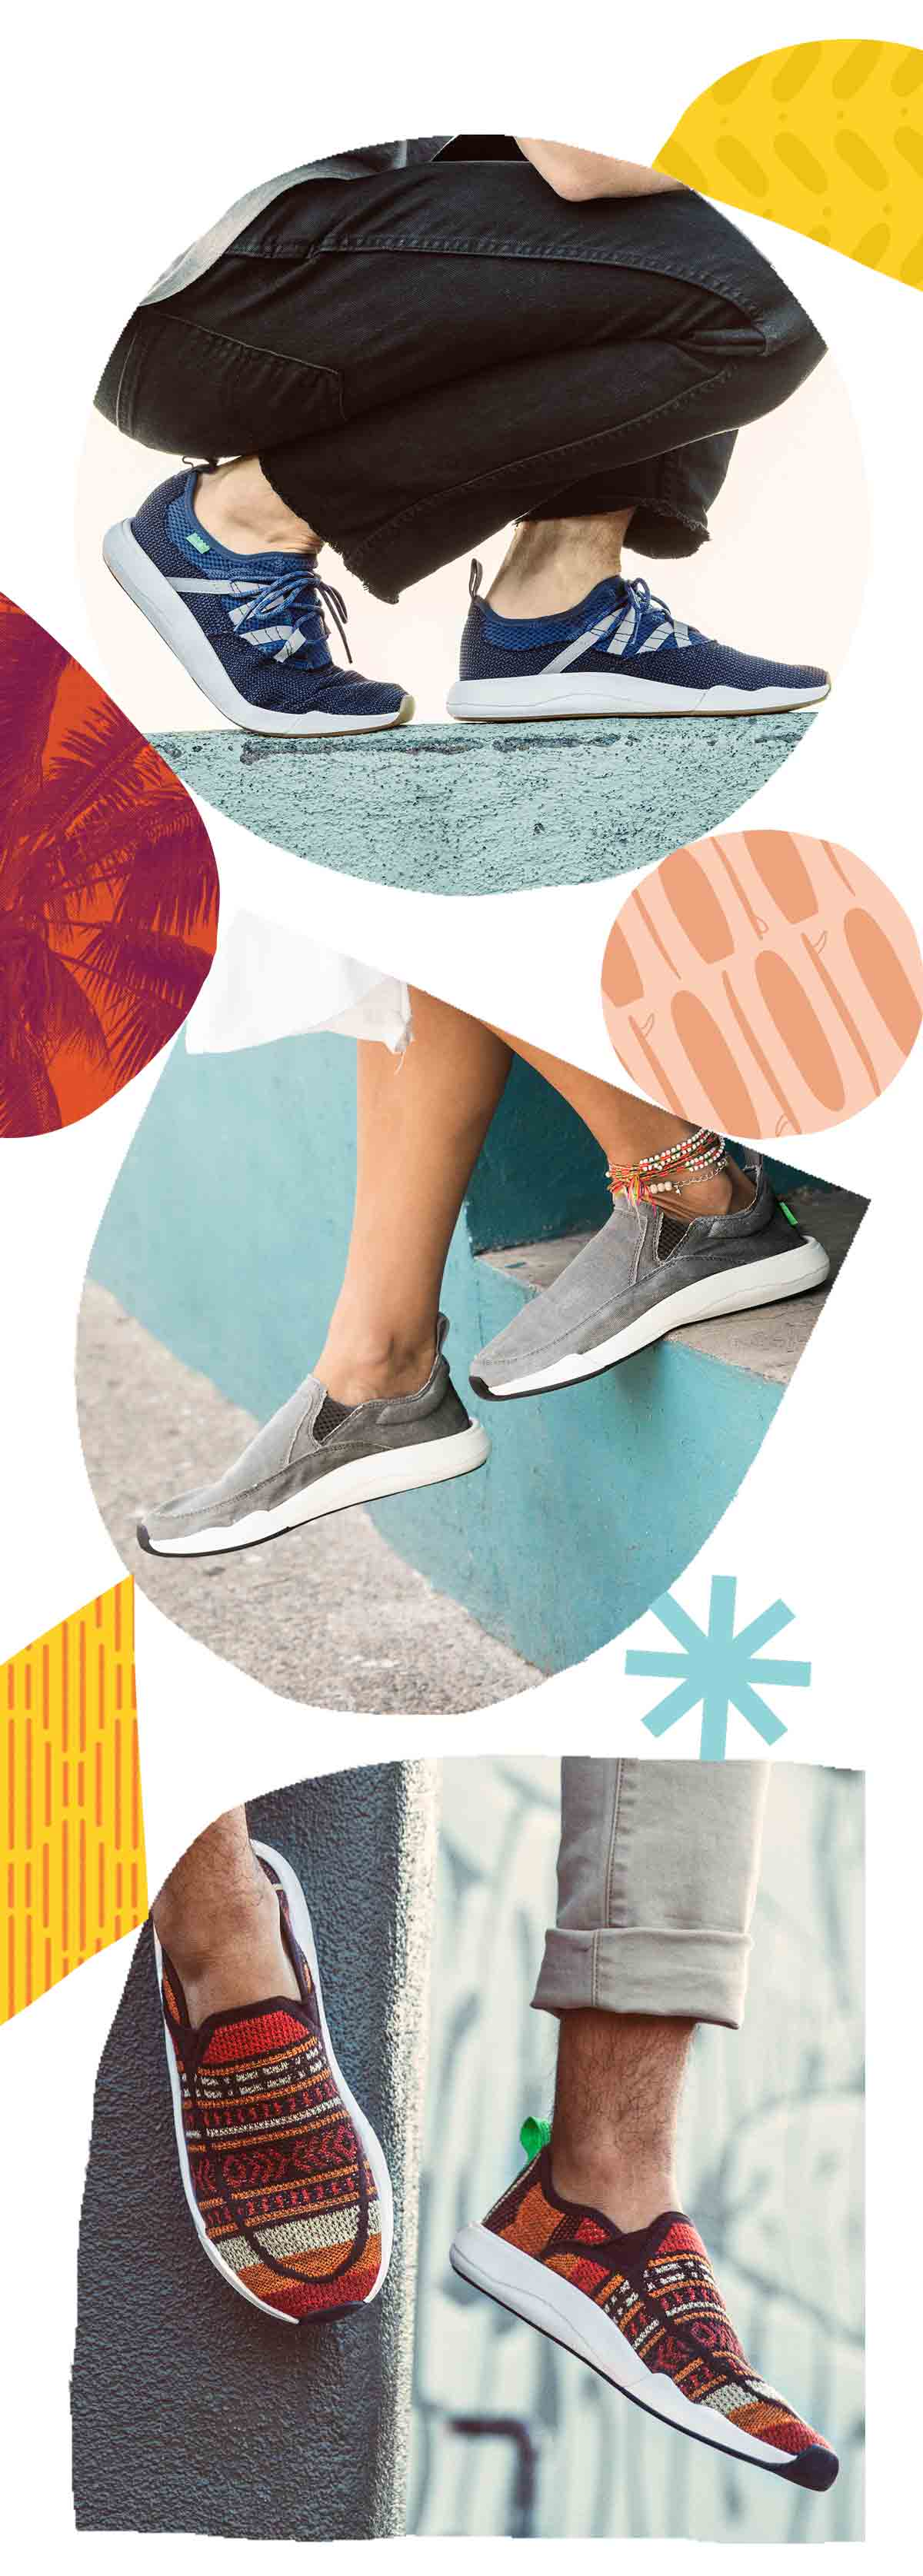 Collage of Shapes and feet wearing shoes